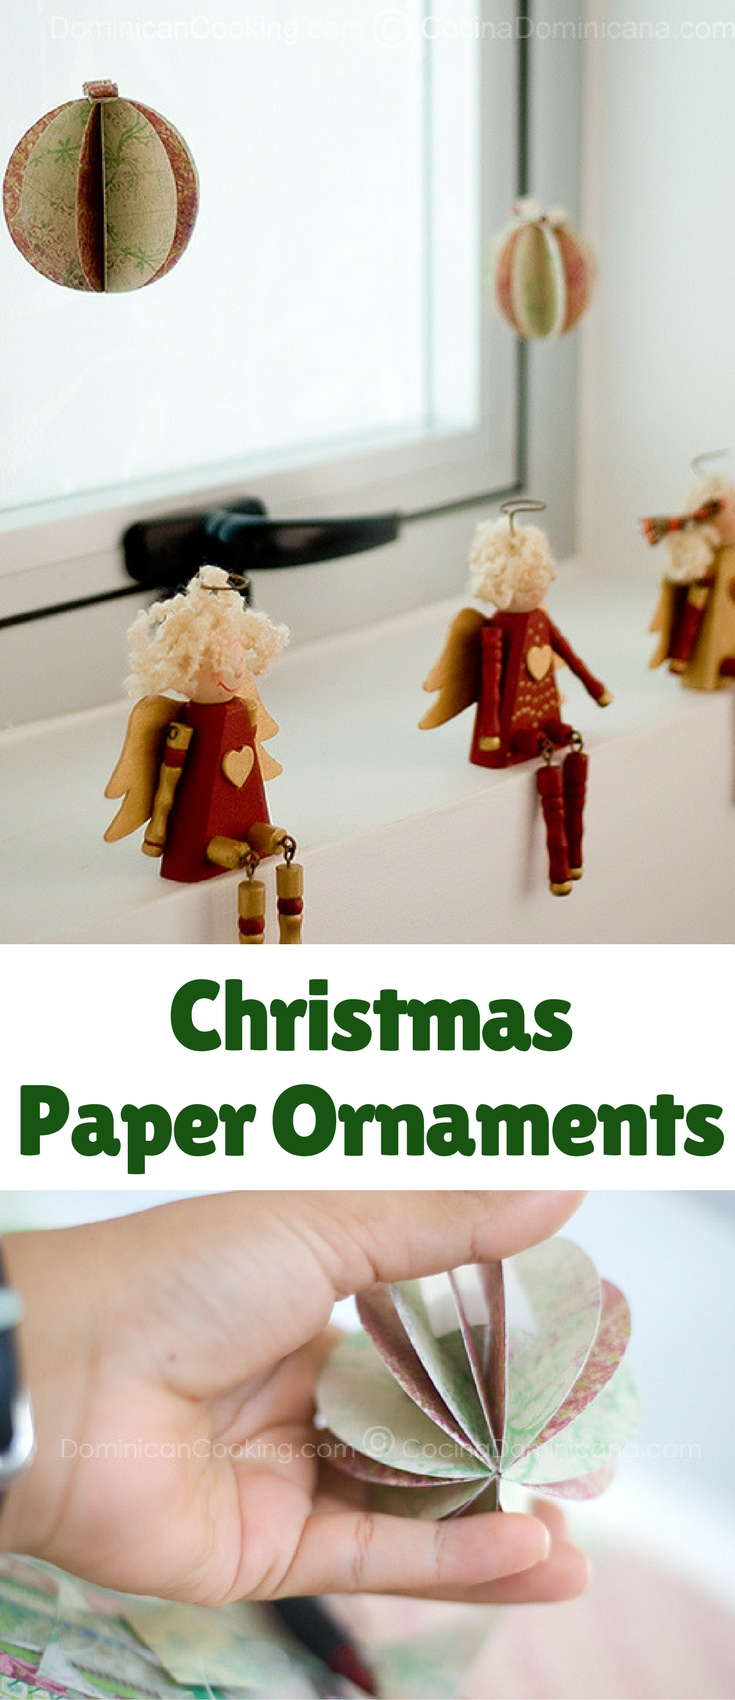 My daughter and I love crafting together, this is how we made some Christmas paper ornaments.